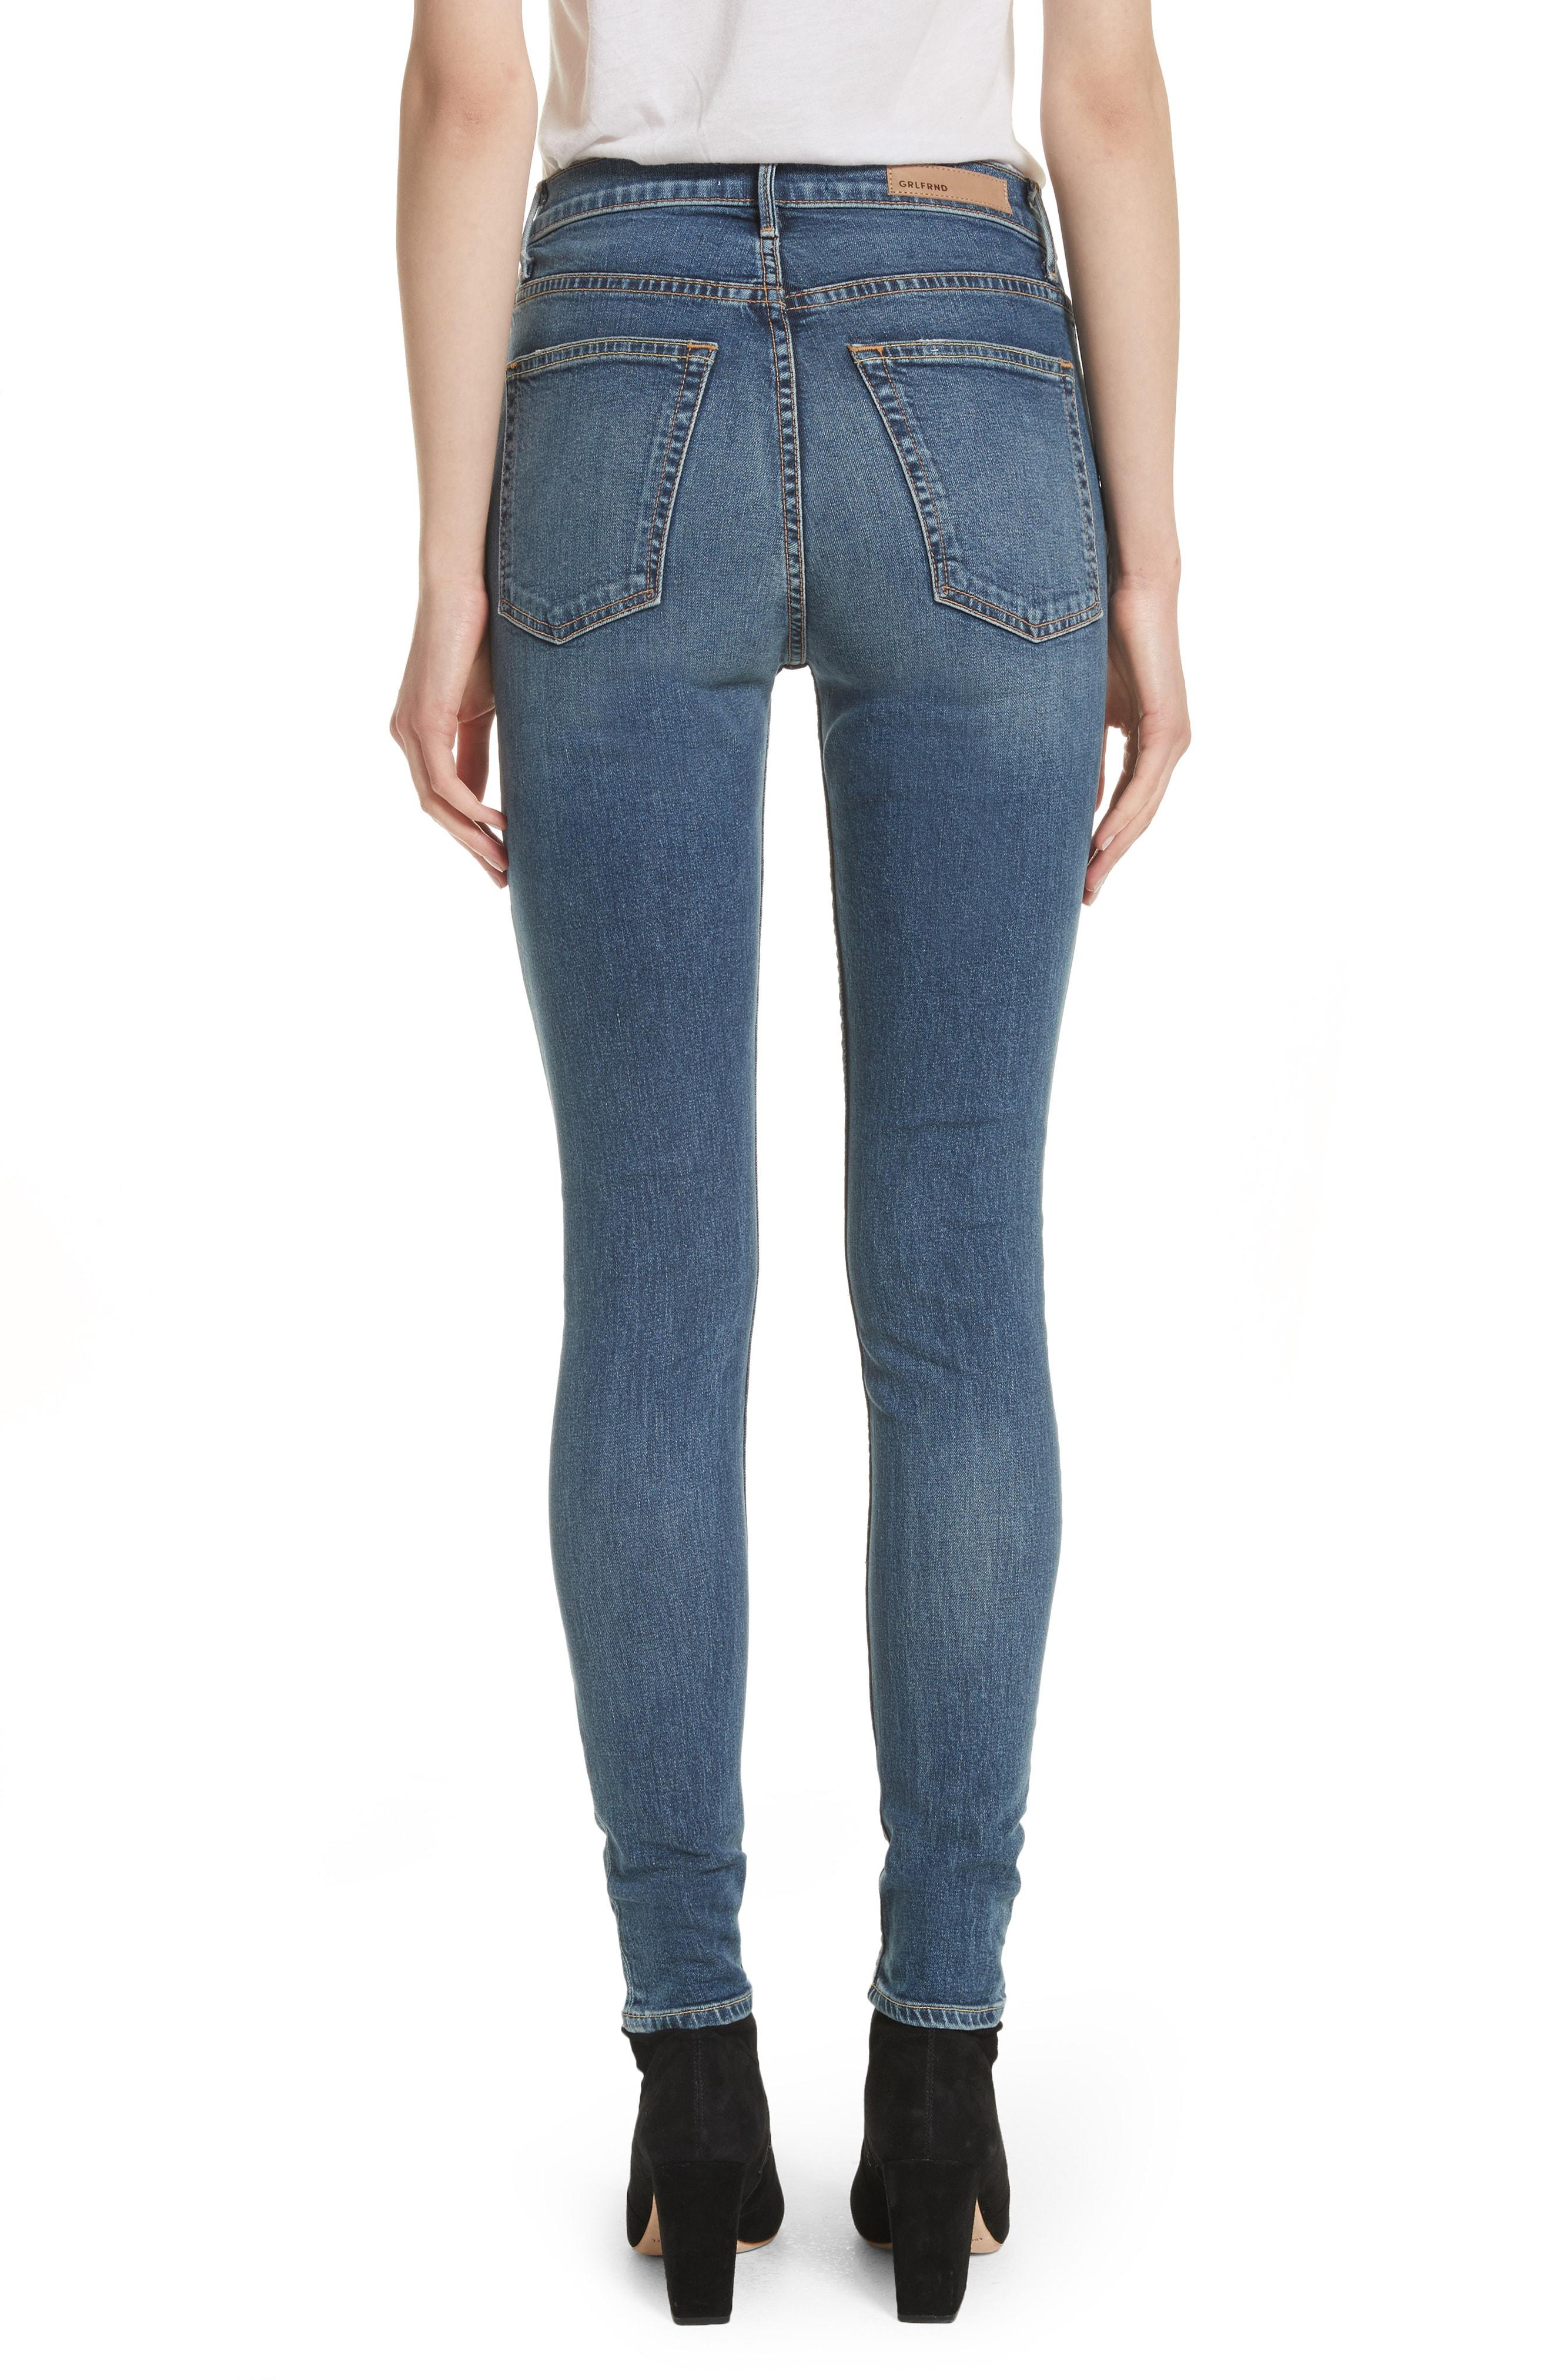 GRLFRND Kendall Jean Size 28 NWT RETAIL 228$ NEW COLLECTION